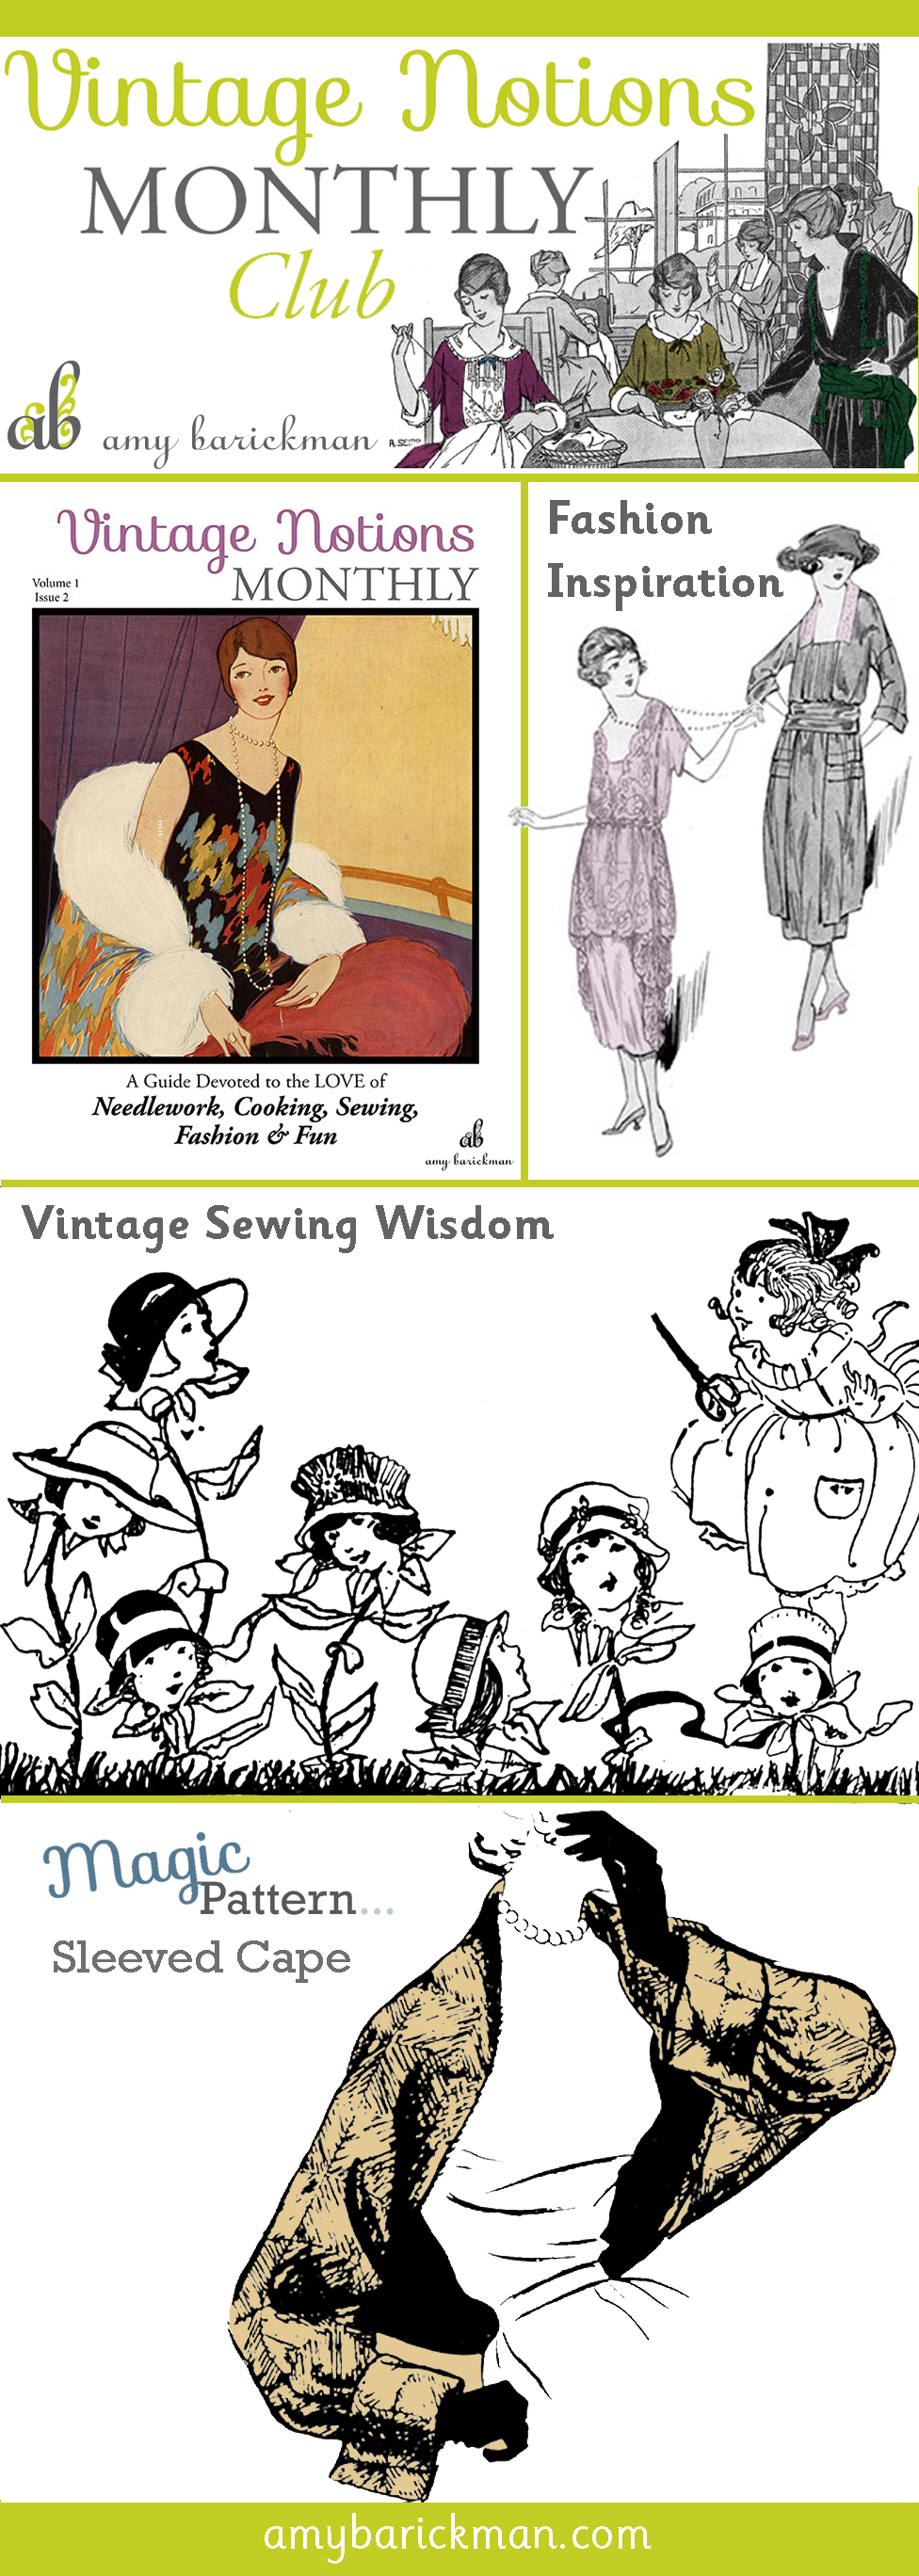 Vintage Notions Monthly-the perfect magazine for every vintage lover!